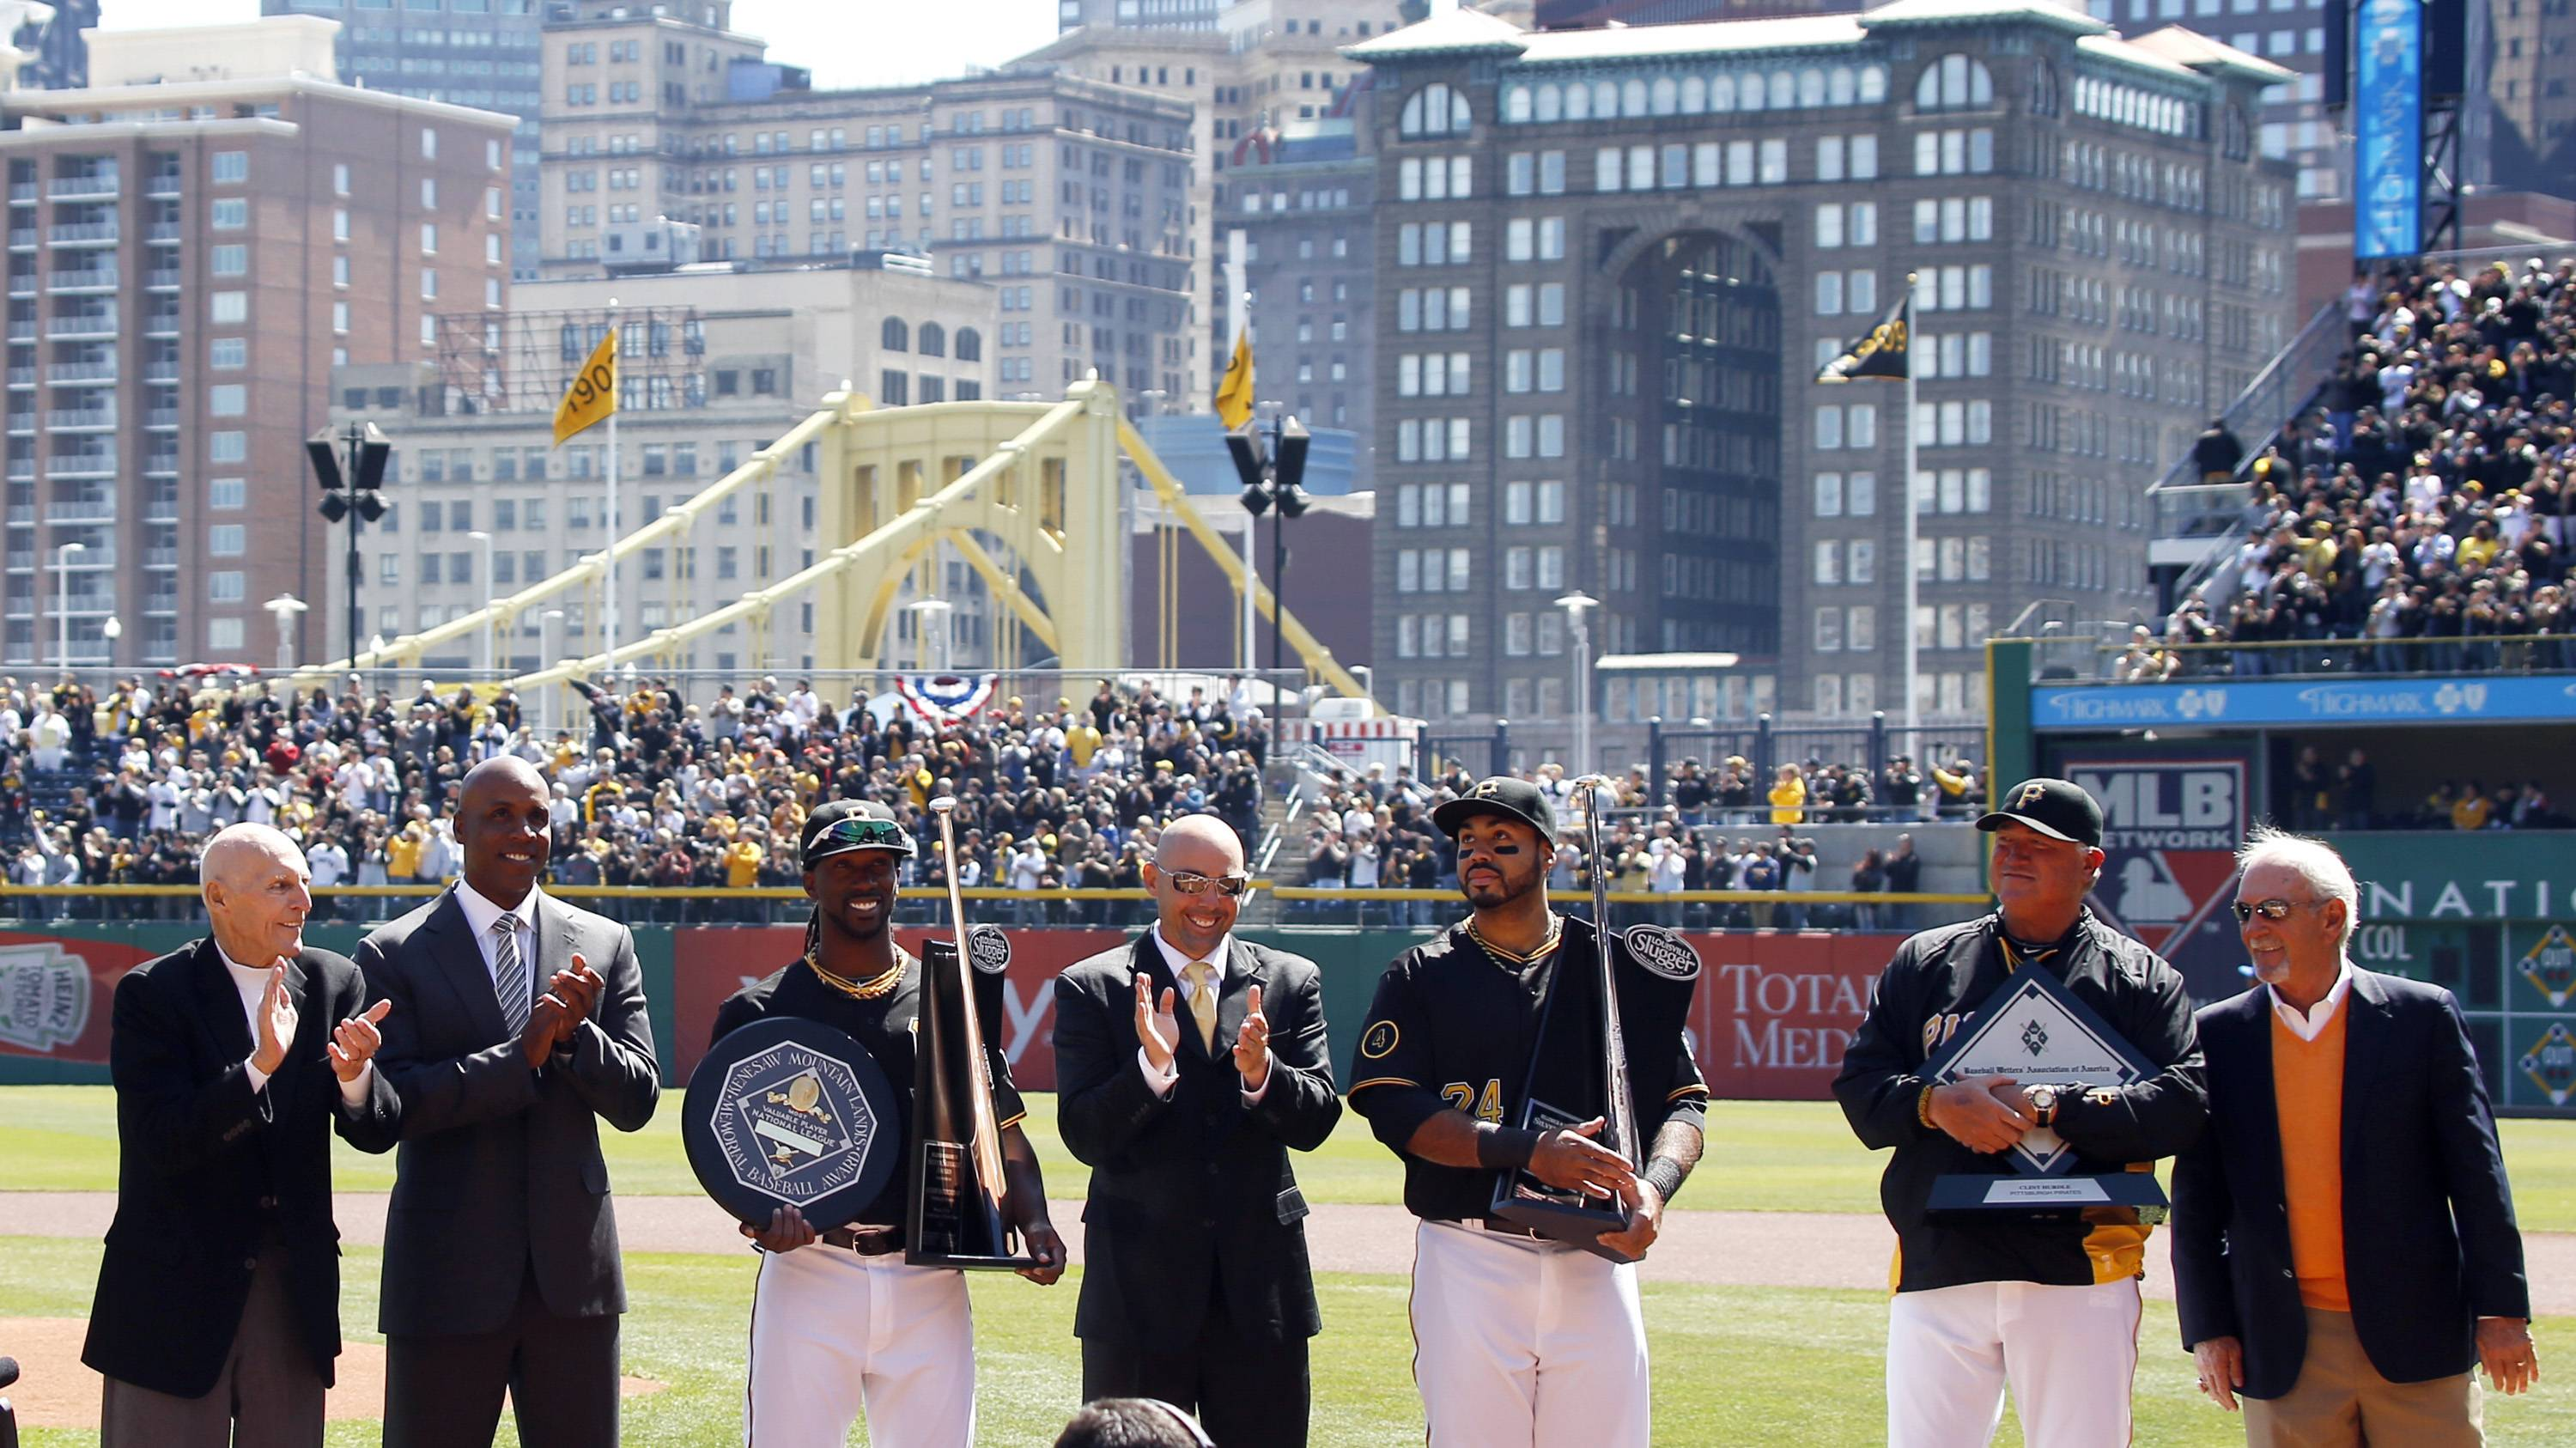 Former Pittsburgh Pirates Dick Groat, left, Barry Bonds, second from left, Jack Wilson, center, present awards to Pittsburgh Pirates Andrew McCutchen, third from left, and Pedro Alvarez, third from right, with manager Clint Hurdle, second from right, and former Pirates manager Jim Leyland. McCutchen was presented with the NL League MVP and Silver Slugger Award and Alvarez a Silver Slugger Award.